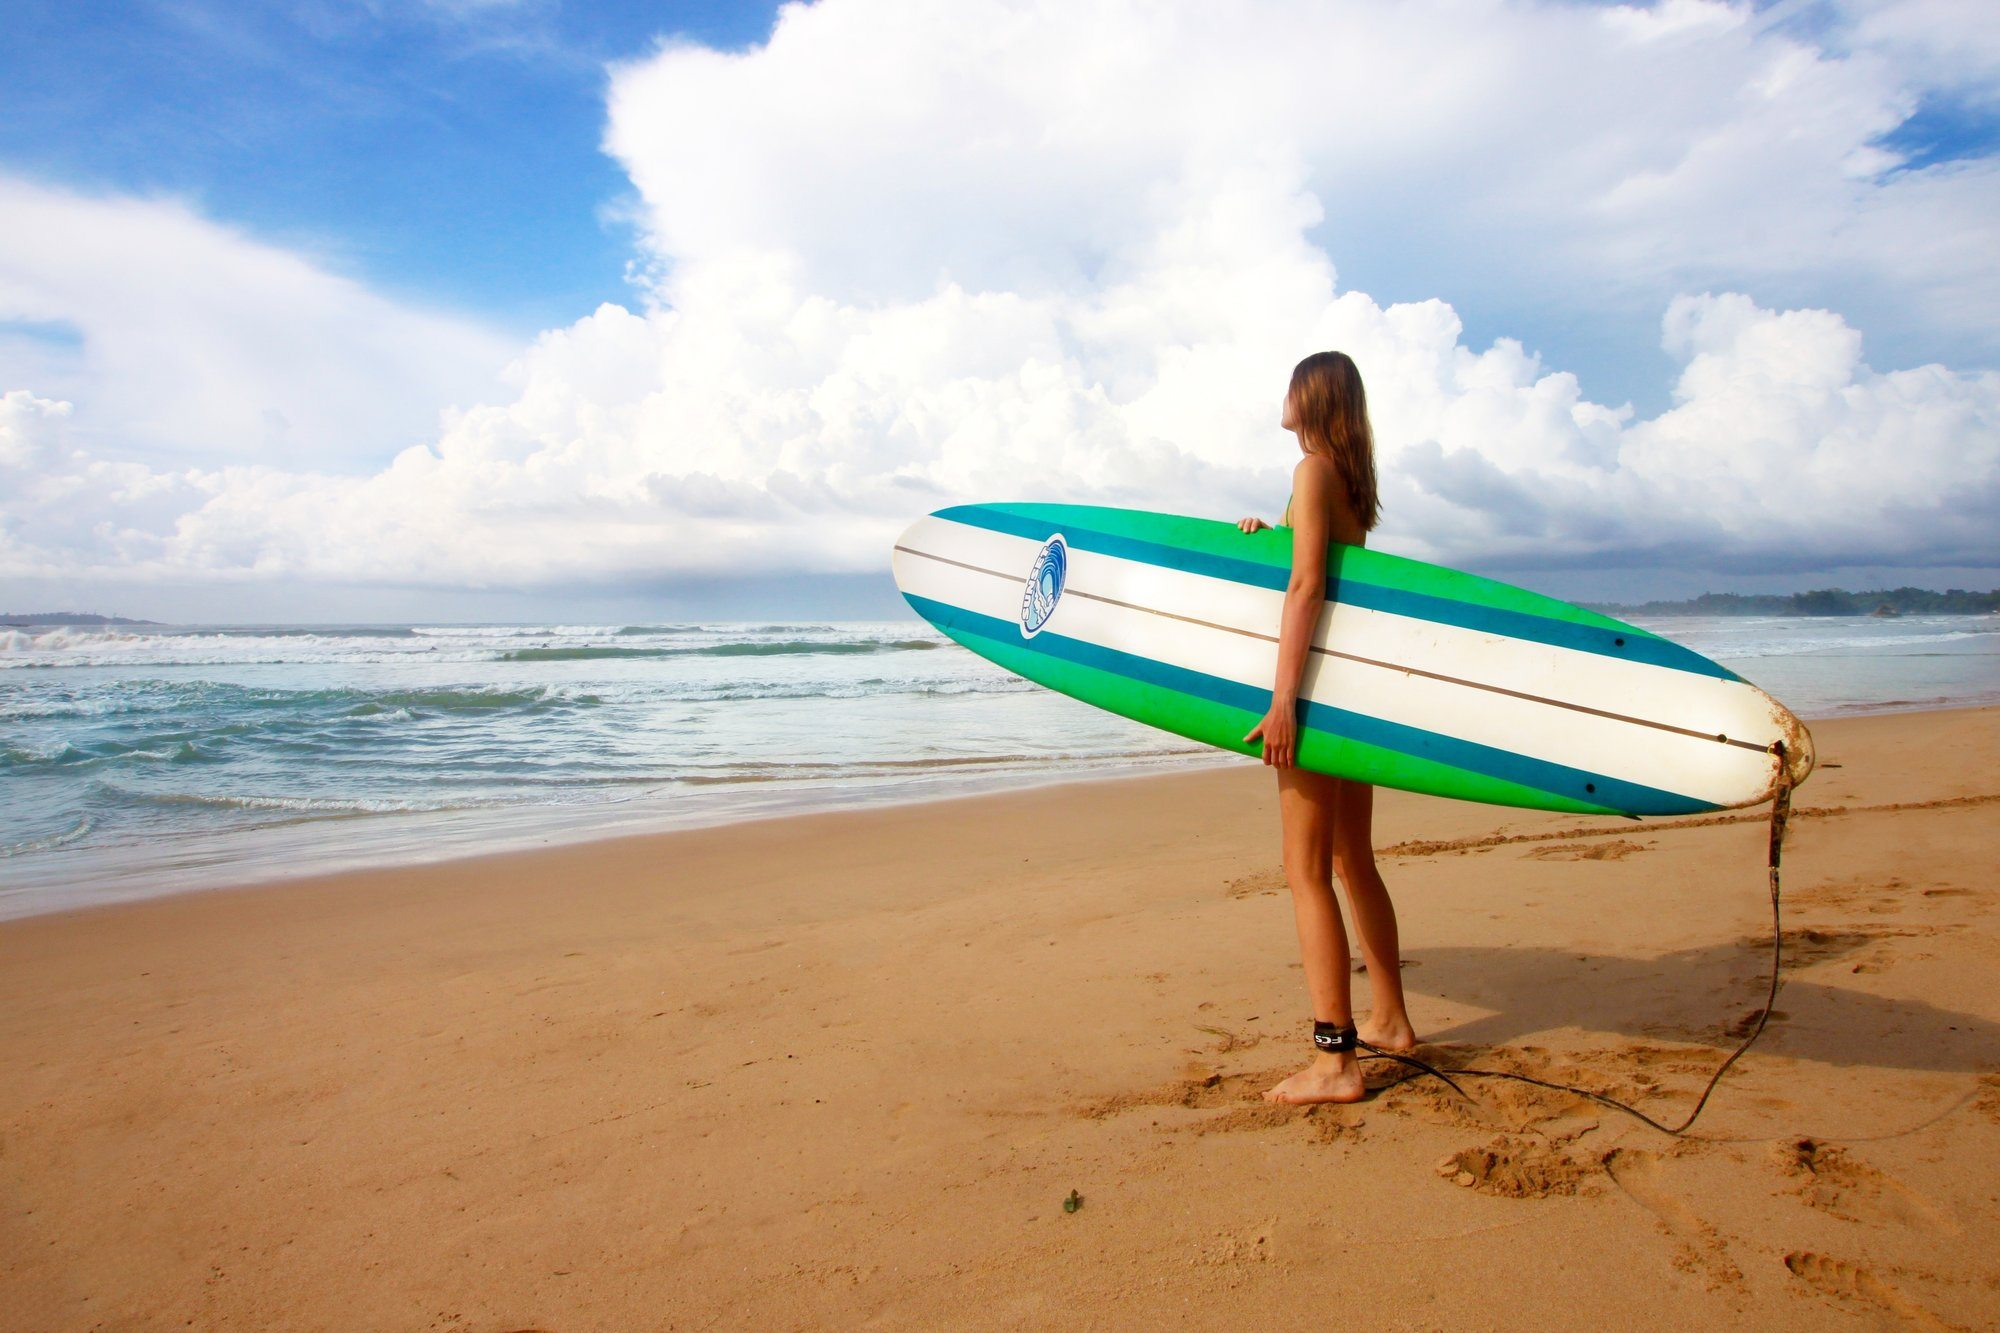 Beginner-Friendly Surf Spots in Bali